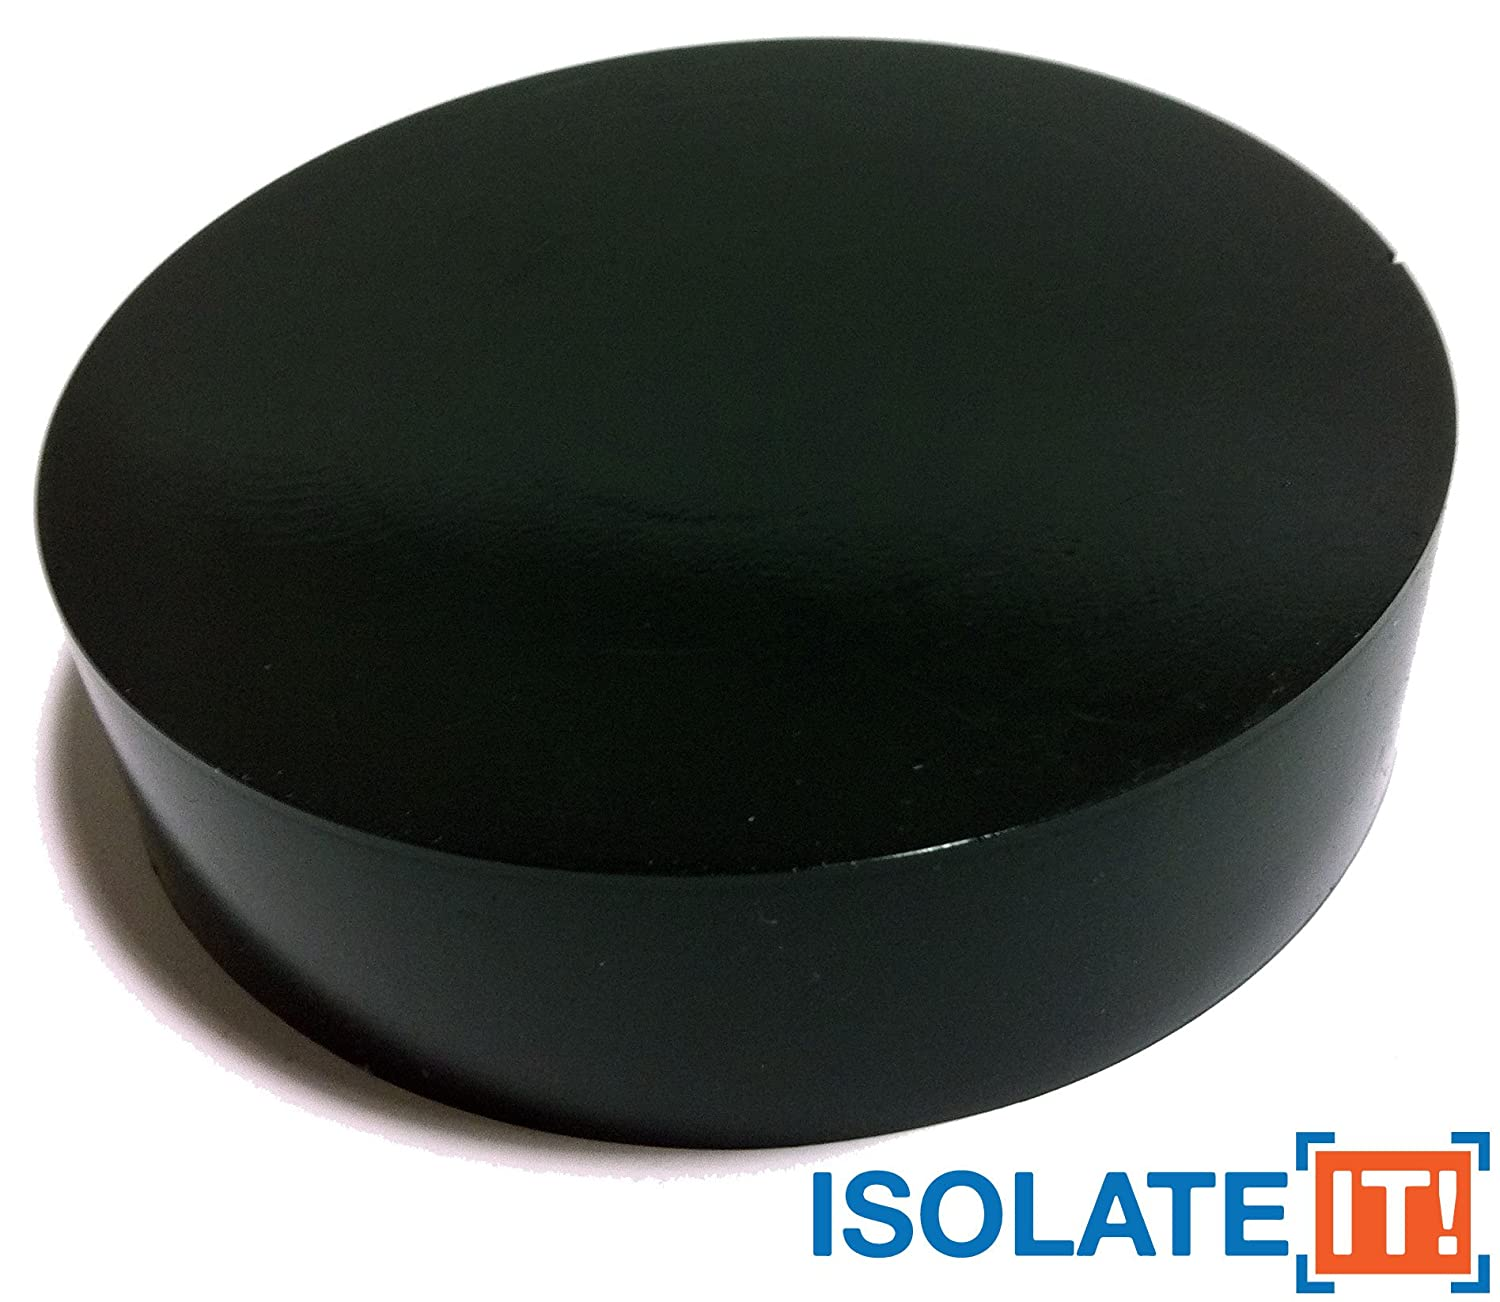 Sorbothane Vibration Isolation Circular Pad 50 Duro (2.54cm Thick 10.16cm Dia.) - 4 Pack Isolate It! 0534100-50-4